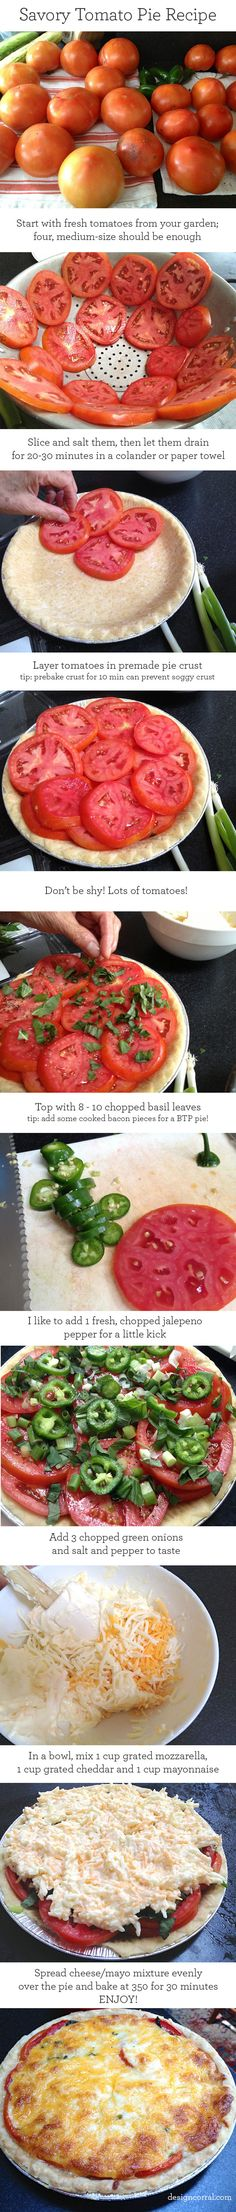 Savory Tomato Pie Recipe: I received this recipe from a true southern belle friend ages ago albeit there was one distinct difference. And it really makes a huge difference,,, switch mozzarella for Parmesan. And extra sharp cheddar adds a layer of depth you'll appreciate along with freshly ground pepper on each tomato layer.